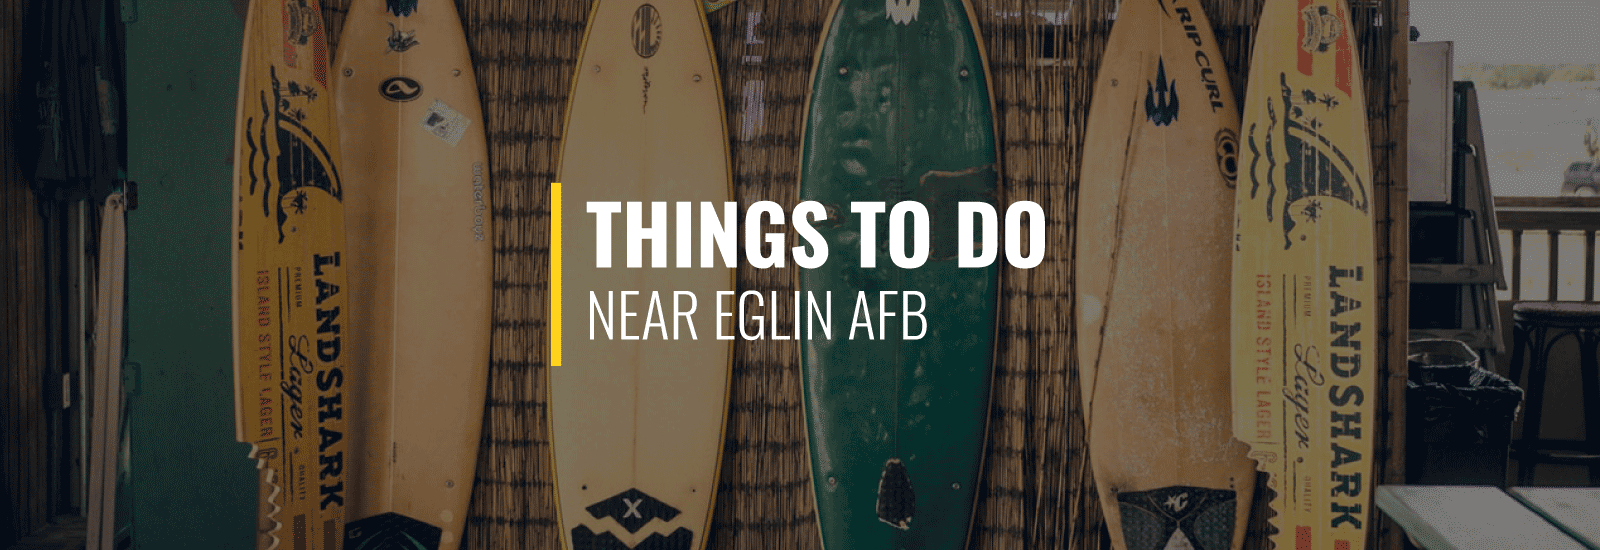 Things to Do Near Eglin AFB